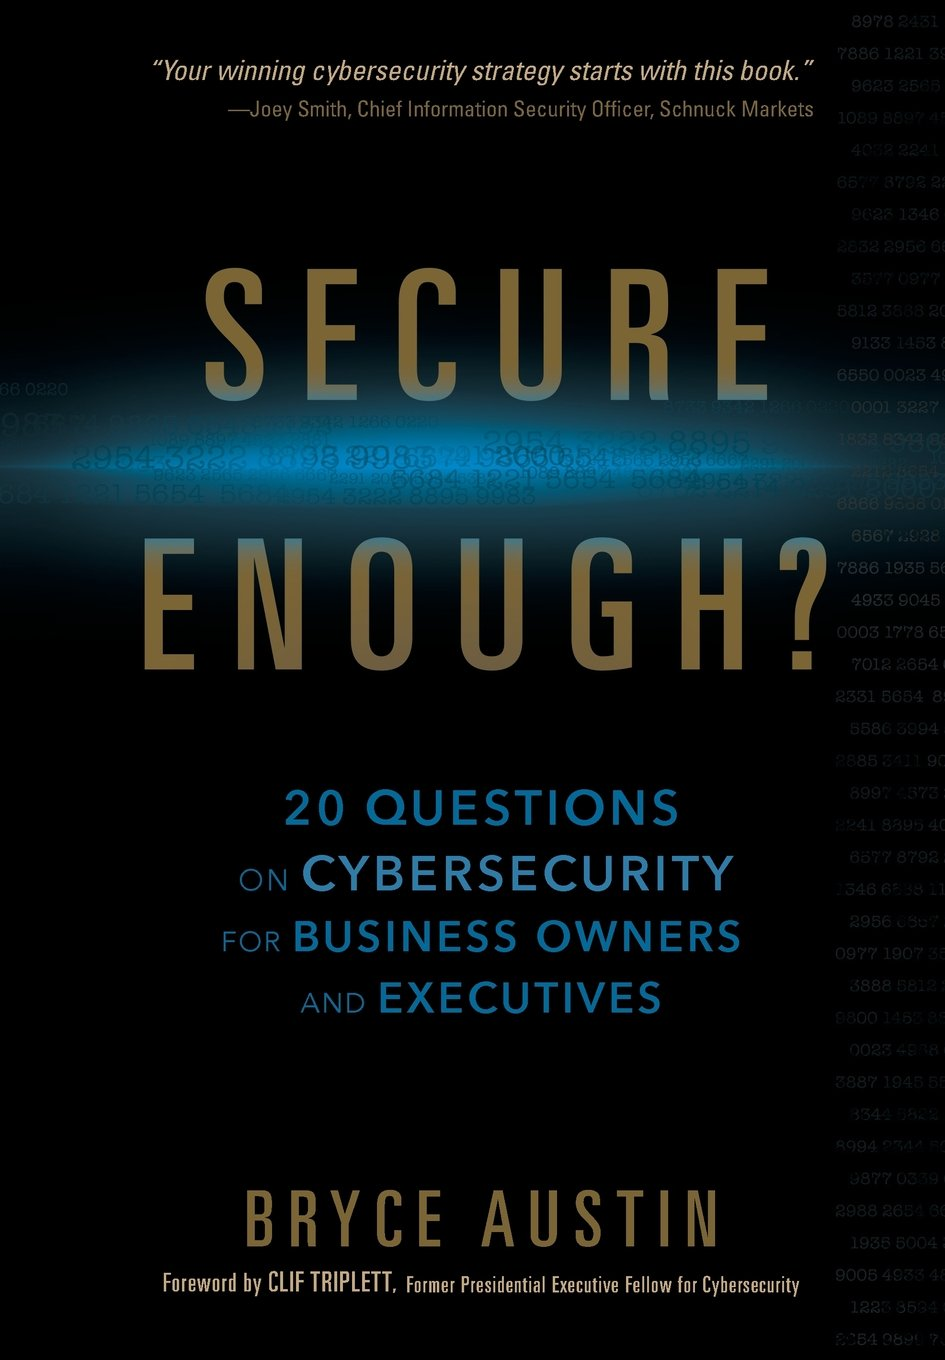 Secure enough 20 questions on cybersecurity for business owners secure enough 20 questions on cybersecurity for business owners and executives bryce austin 9780999393109 amazon books fandeluxe Images